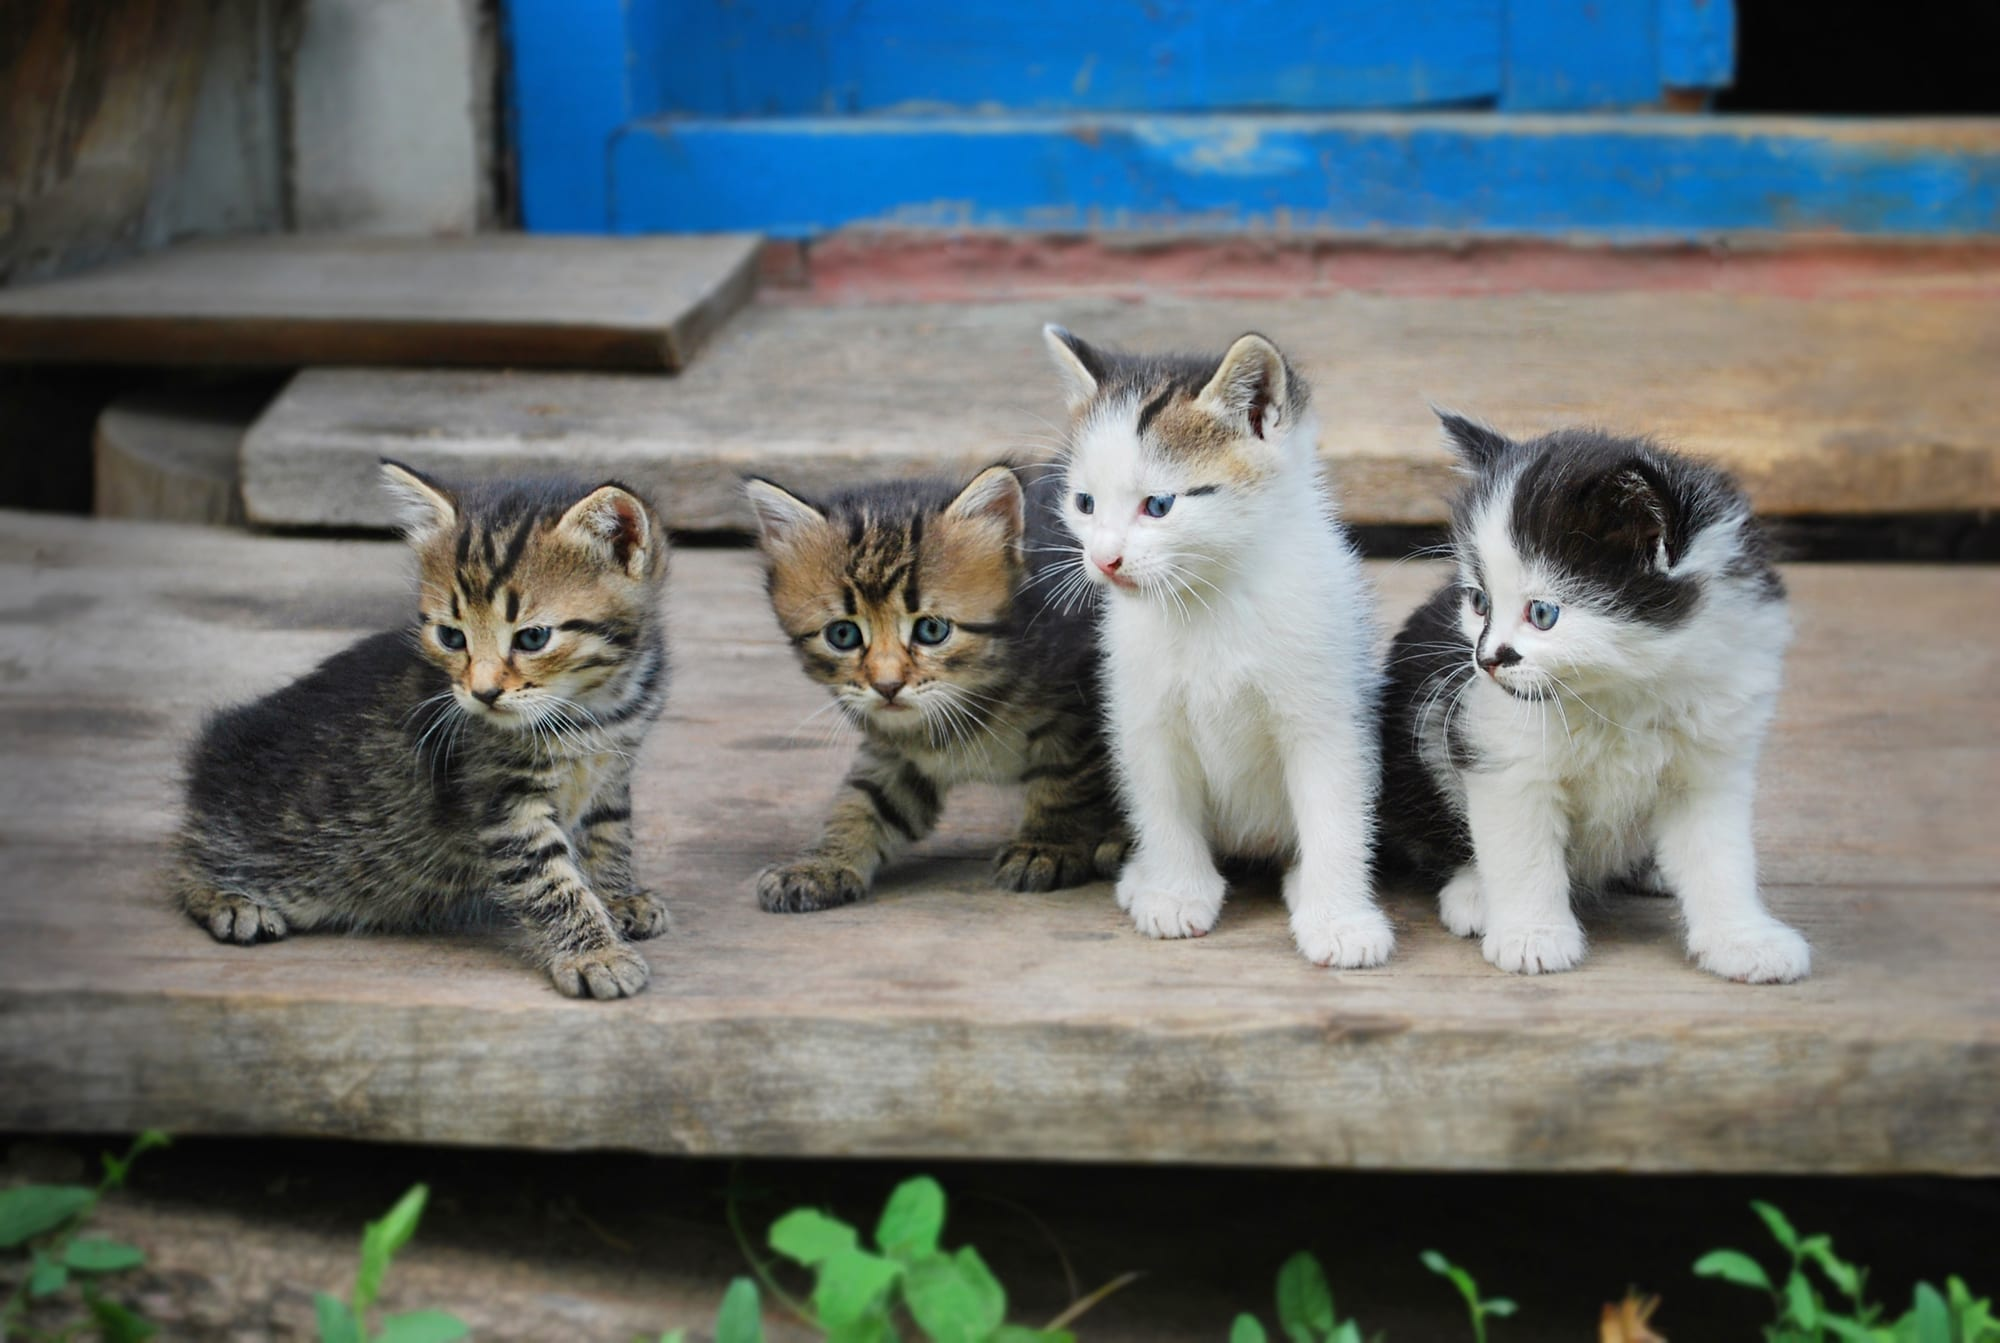 Kittens sitting on a step